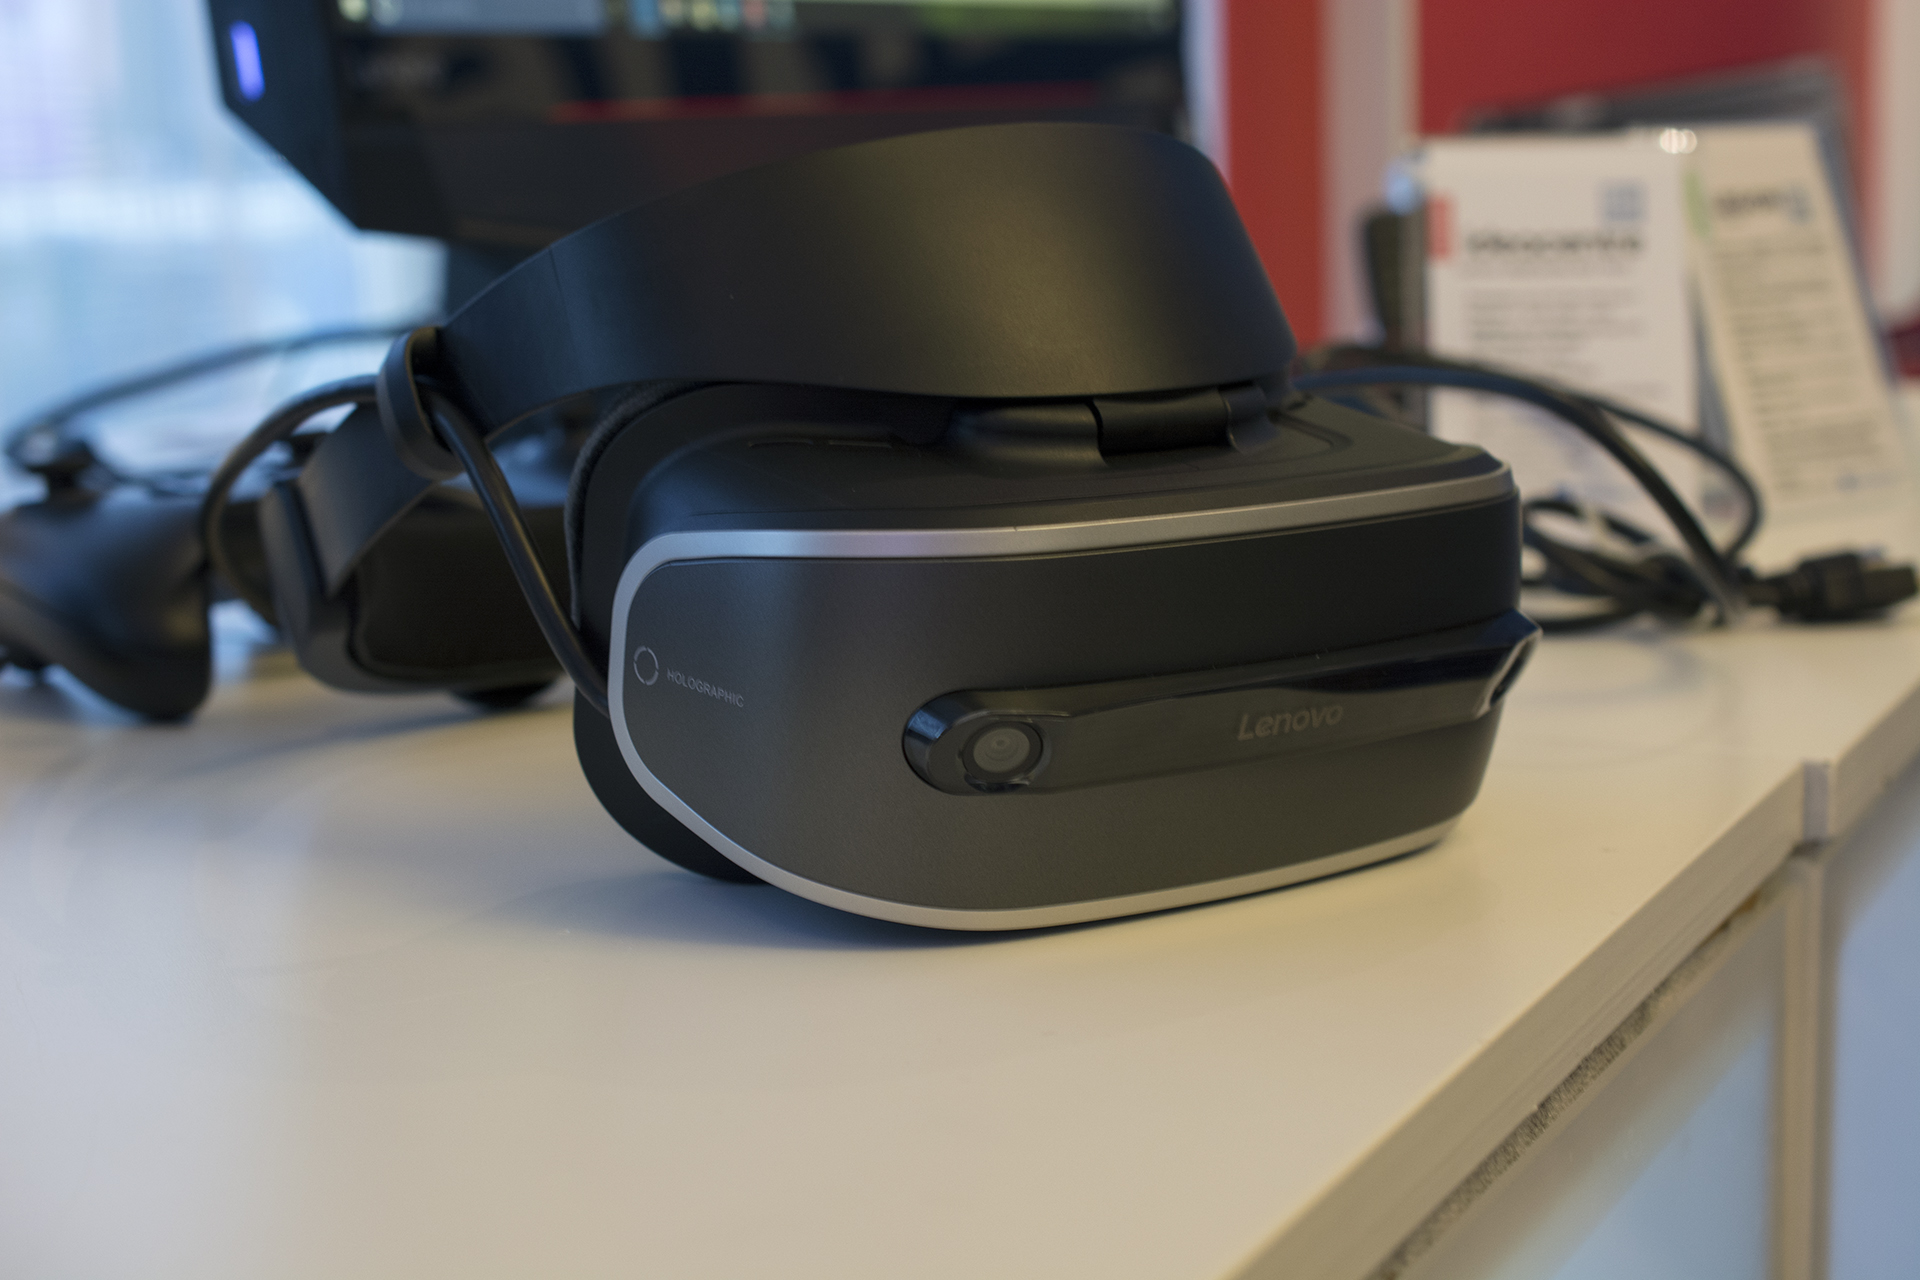 Microsoft remains focused on Windows-based VR headsets, like this one from Lenovo, rather than bringing VR to consoles.